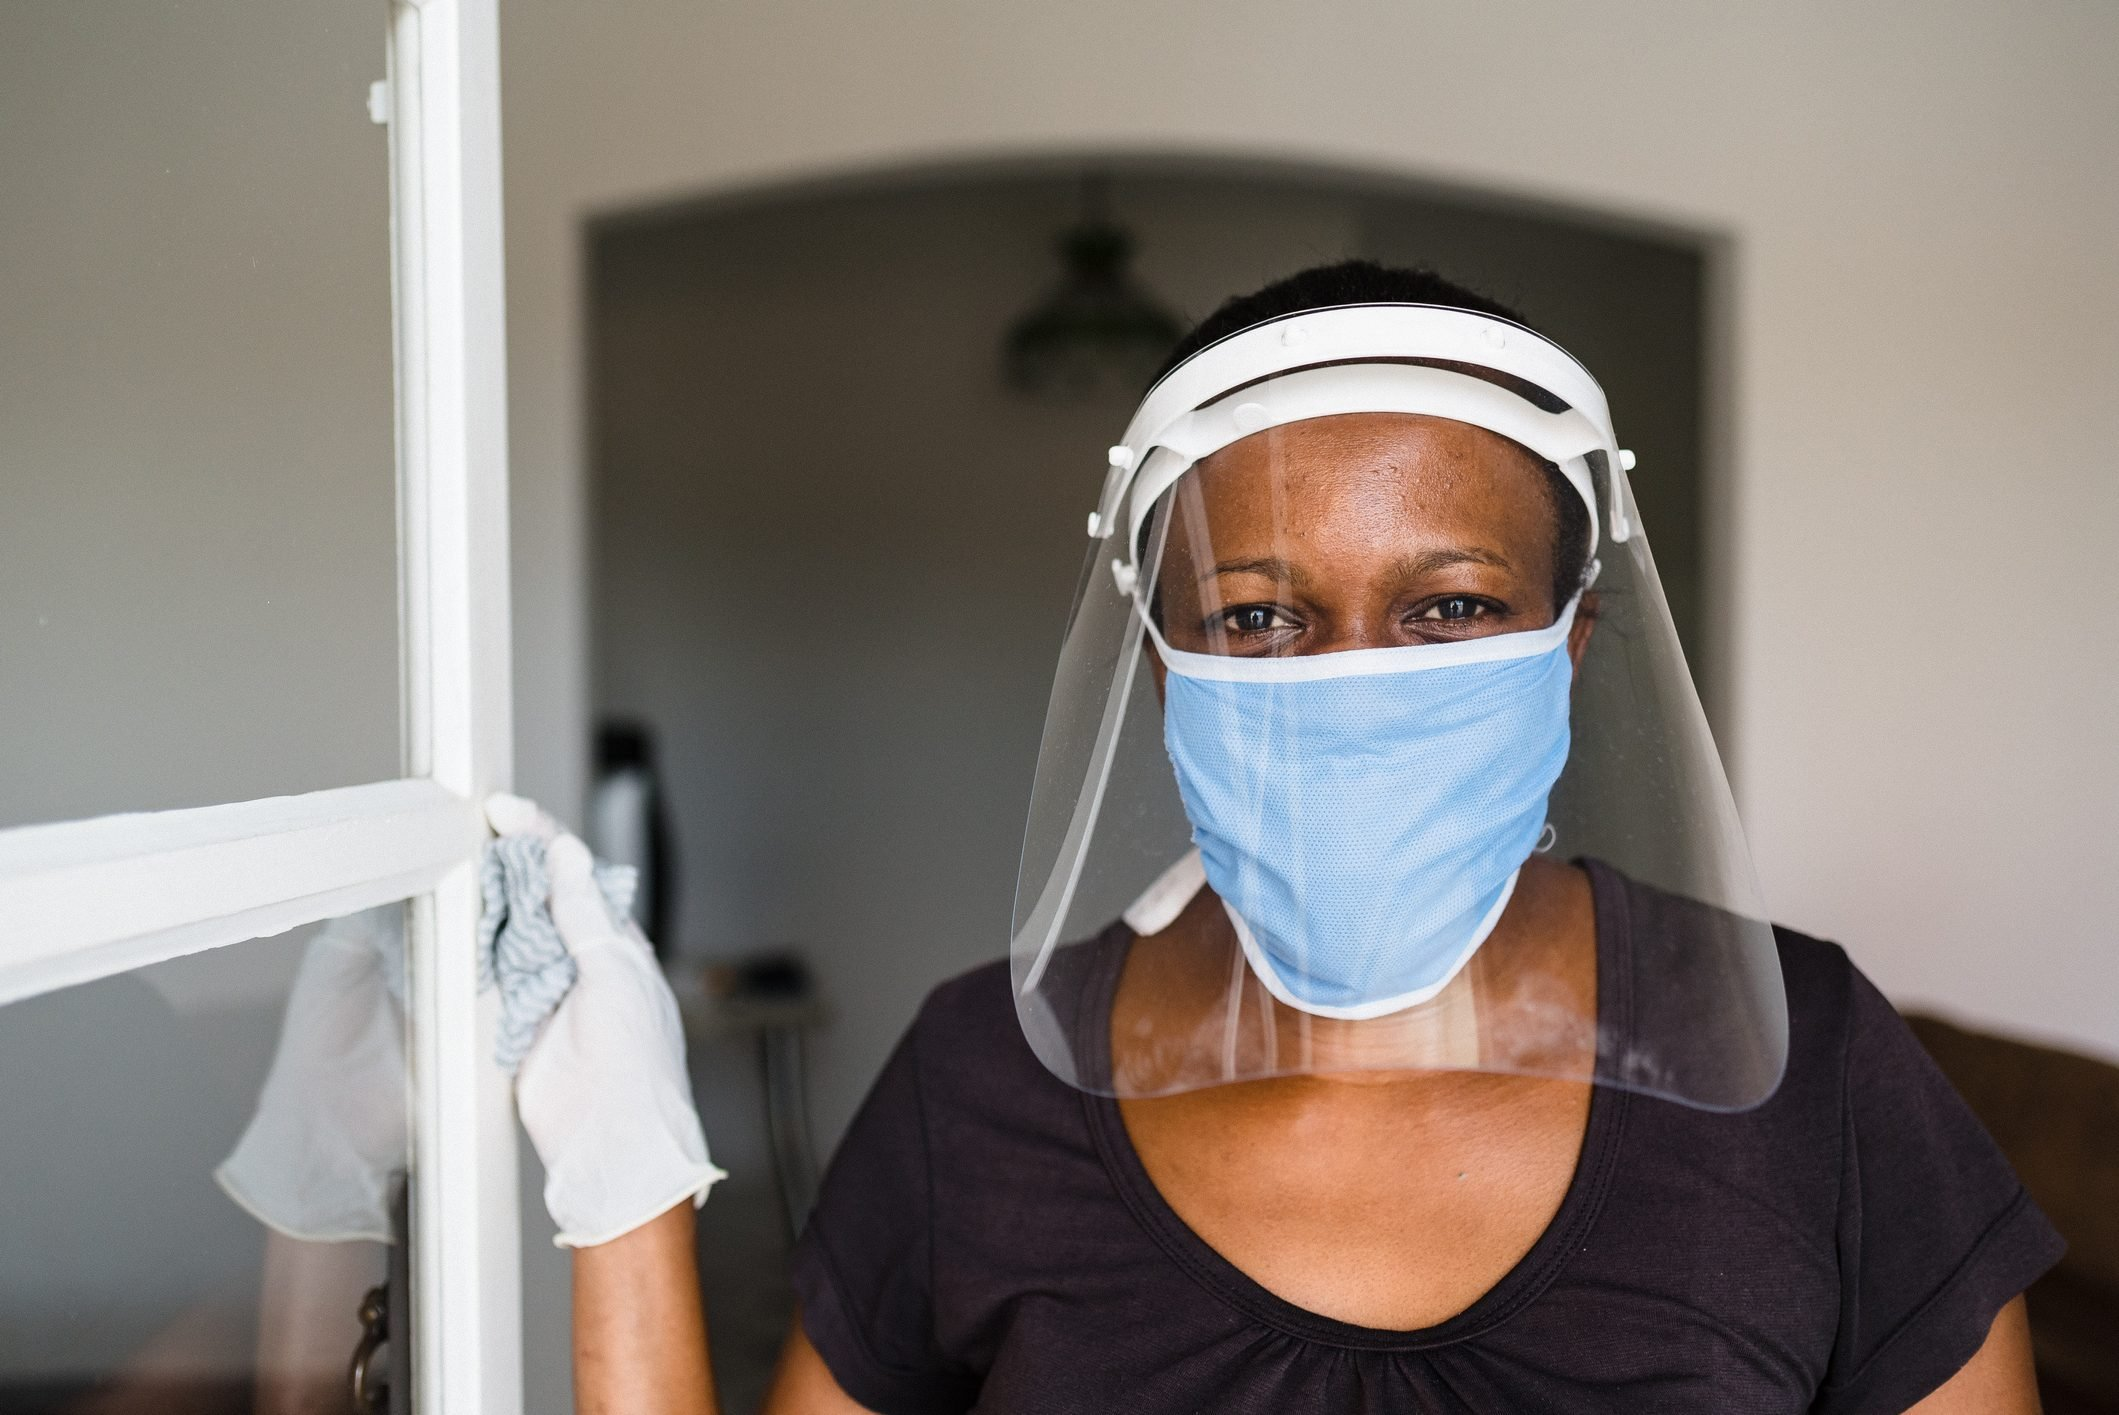 Covid-19: Portrait of a female worker wearing face shield and mask